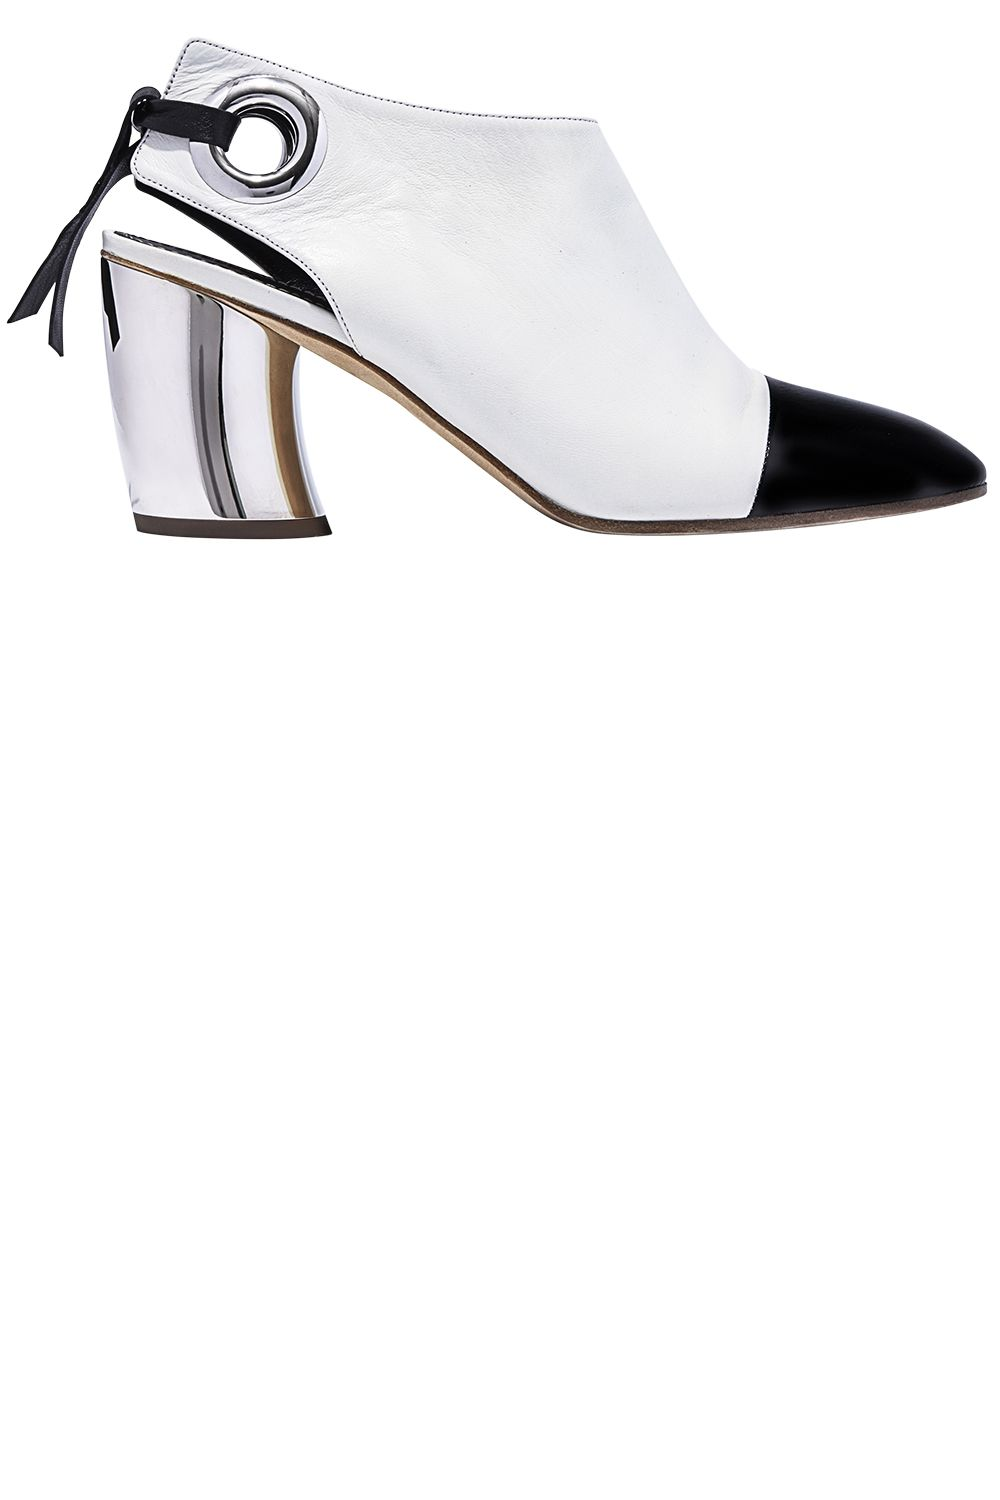 "<p><strong data-redactor-tag=""strong"">Proenza Schouler</strong> shoes, $860, <a href=""https://www.proenzaschouler.com/"" target=""_blank"">proenzaschouler.com</a>.<span class=""redactor-invisible-space"" data-verified=""redactor"" data-redactor-tag=""span"" data-redactor-class=""redactor-invisible-space""></span></p>"